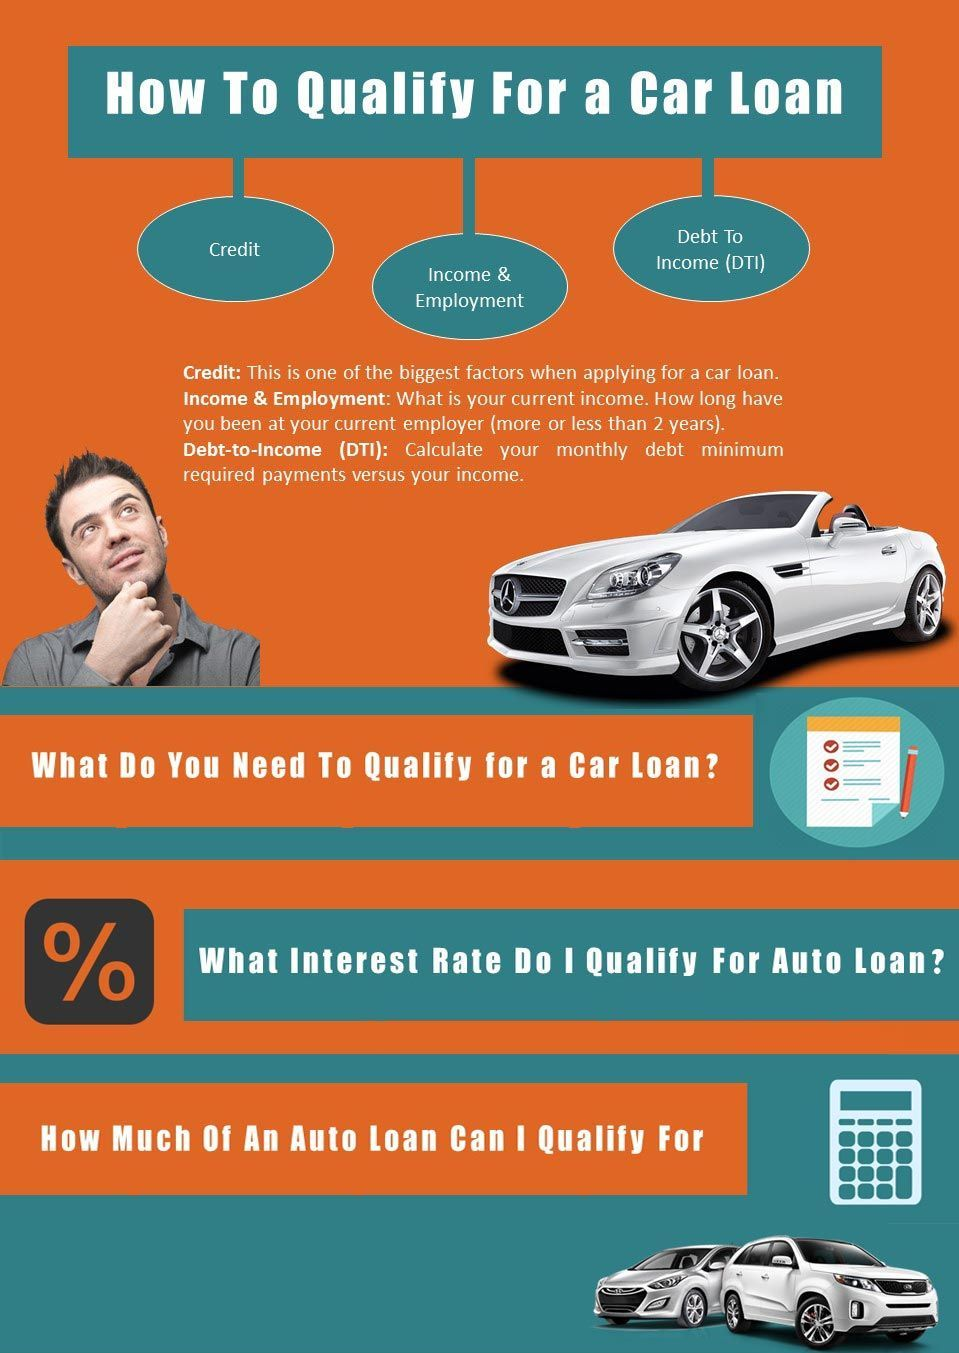 Idbi Bank Offers Car Loans With Attractive Interest Rates For Upto 7 Years Calculate Your Eligibility And Get A Free Emi Car Loans Loans For Bad Credit Loan